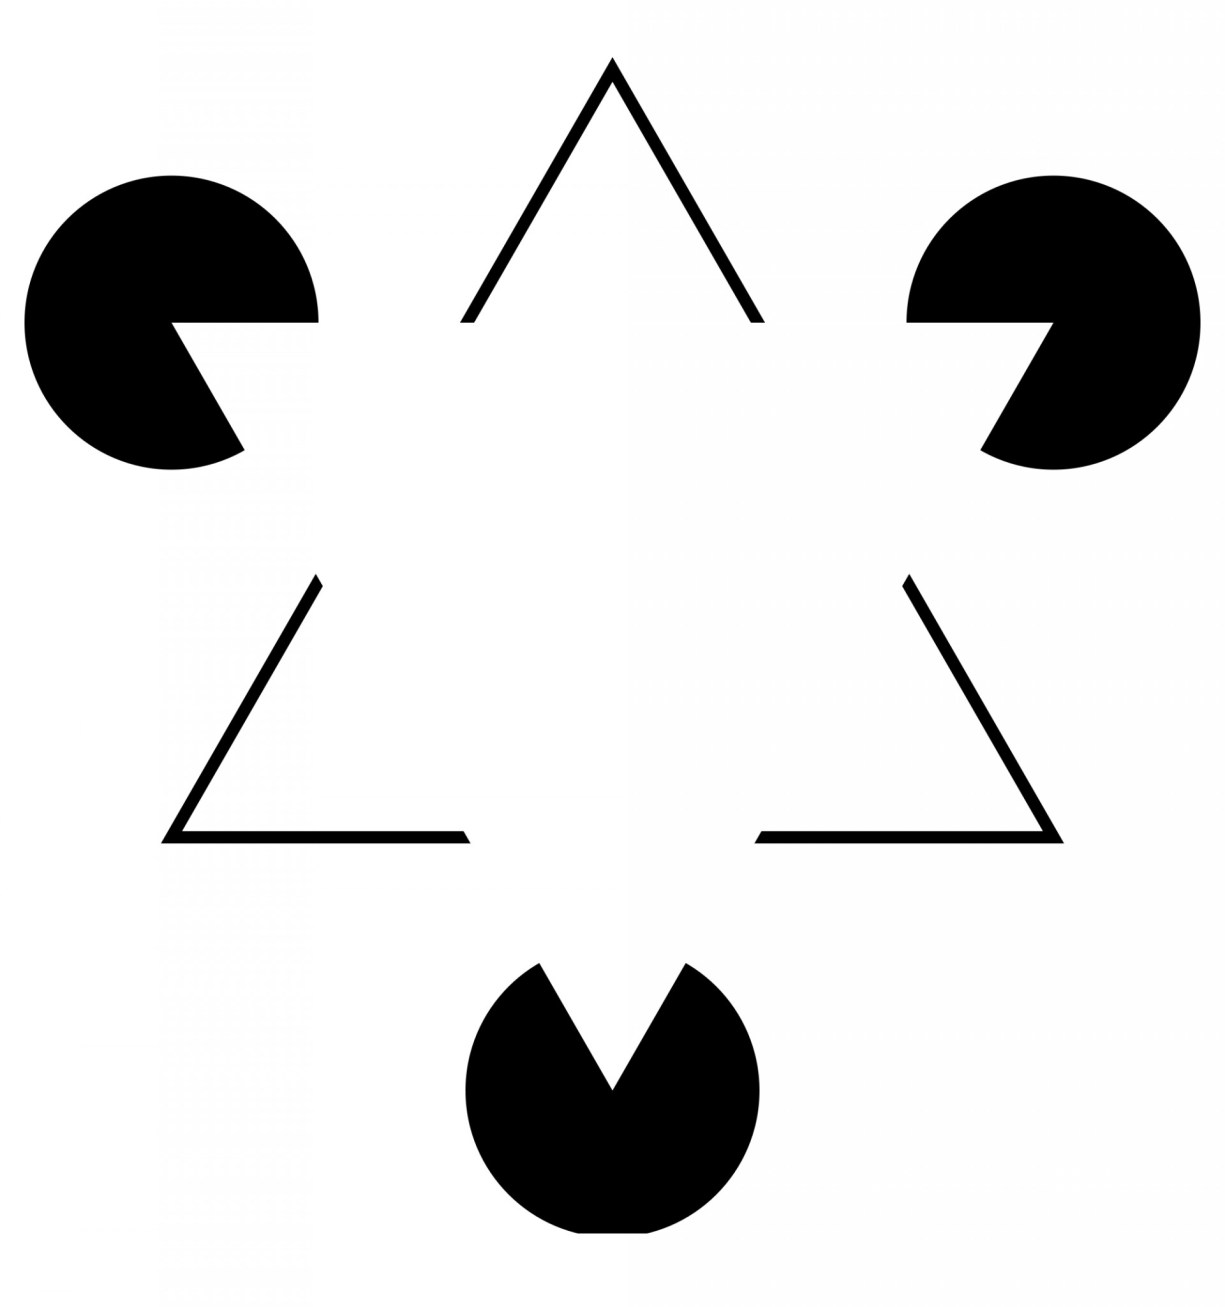 Photo 3: Optical illusions have been designed to trick the brain's visual system. (wikimedia.org)